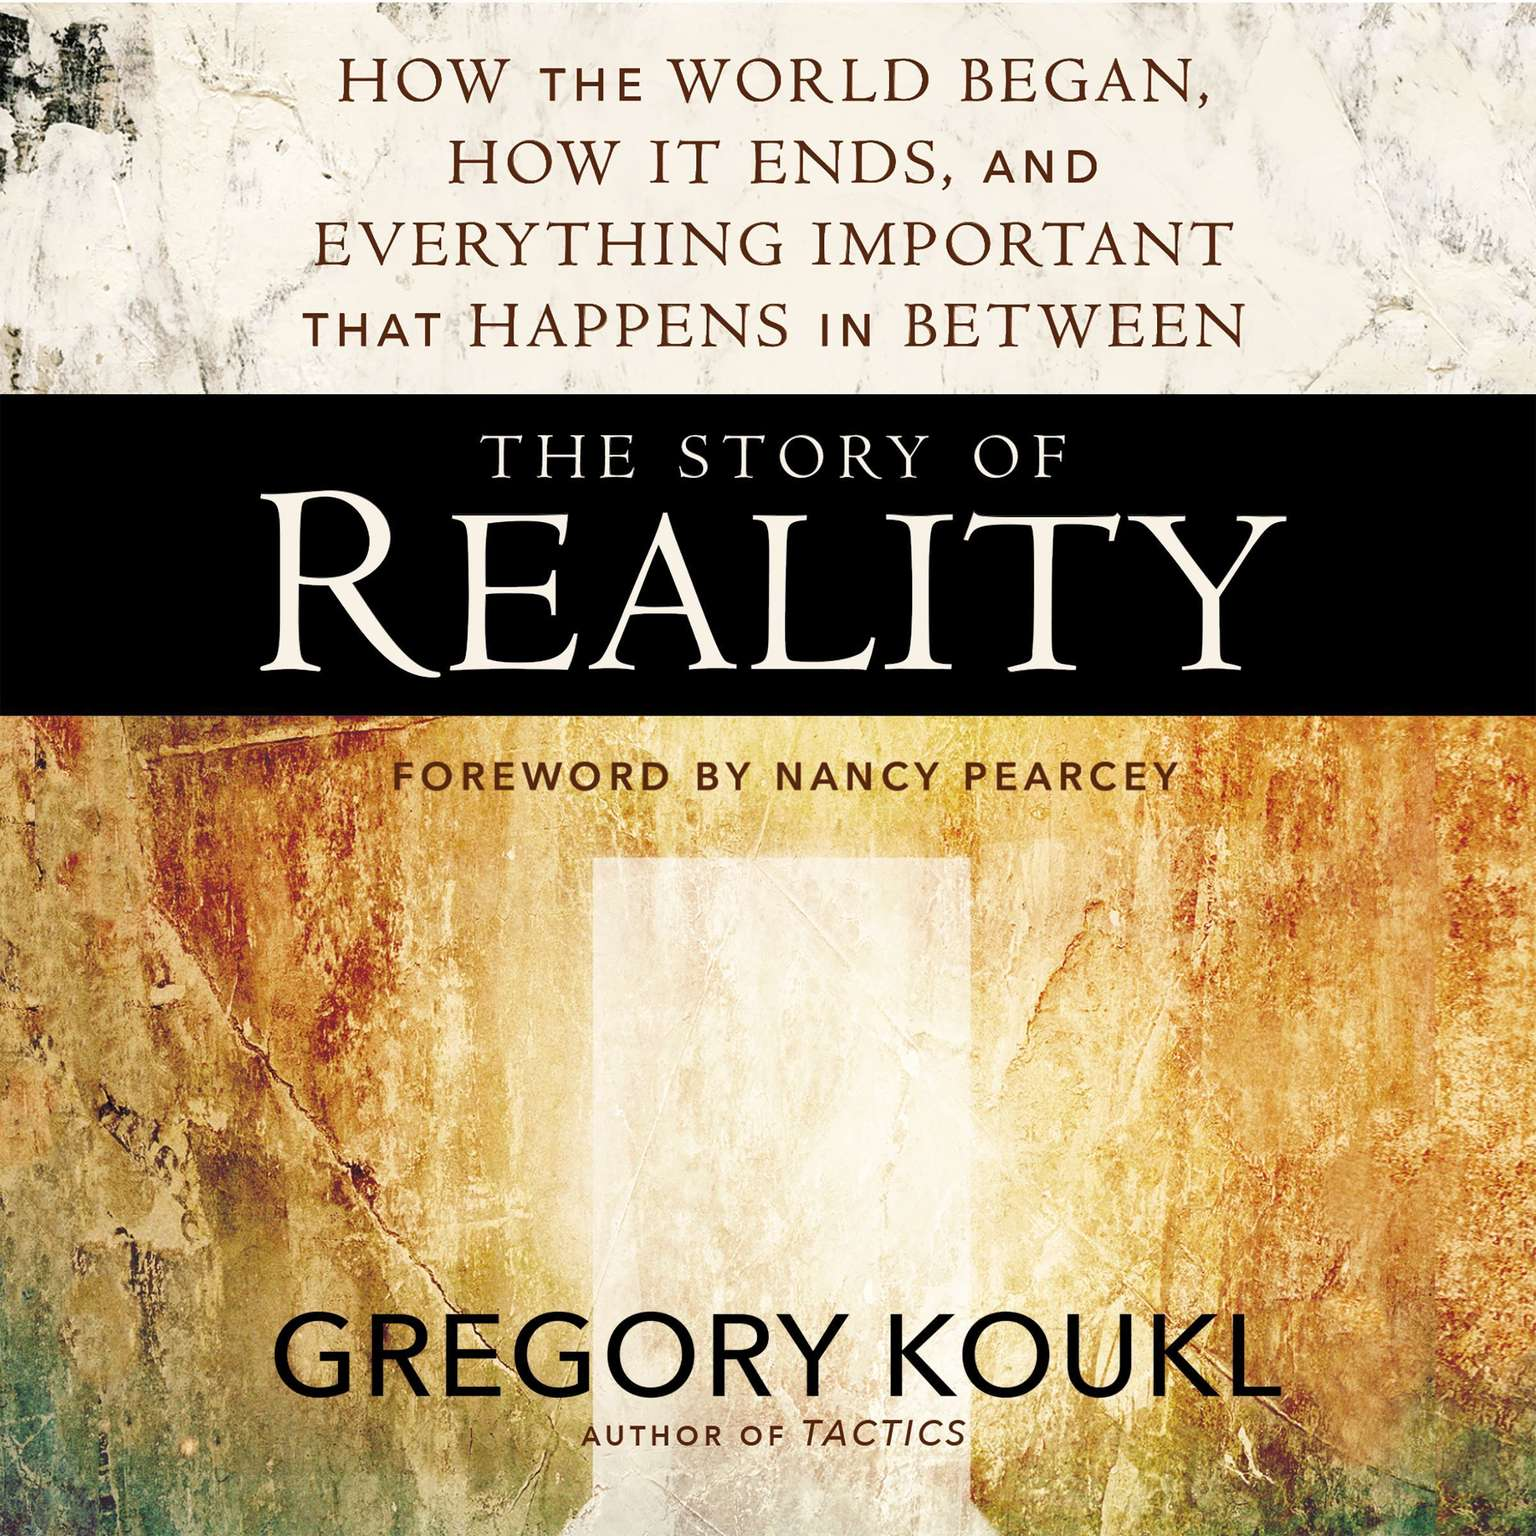 The Story of Reality: How the World Began, How It Ends, and Everything Important that Happens in Between Audiobook, by Gregory Koukl